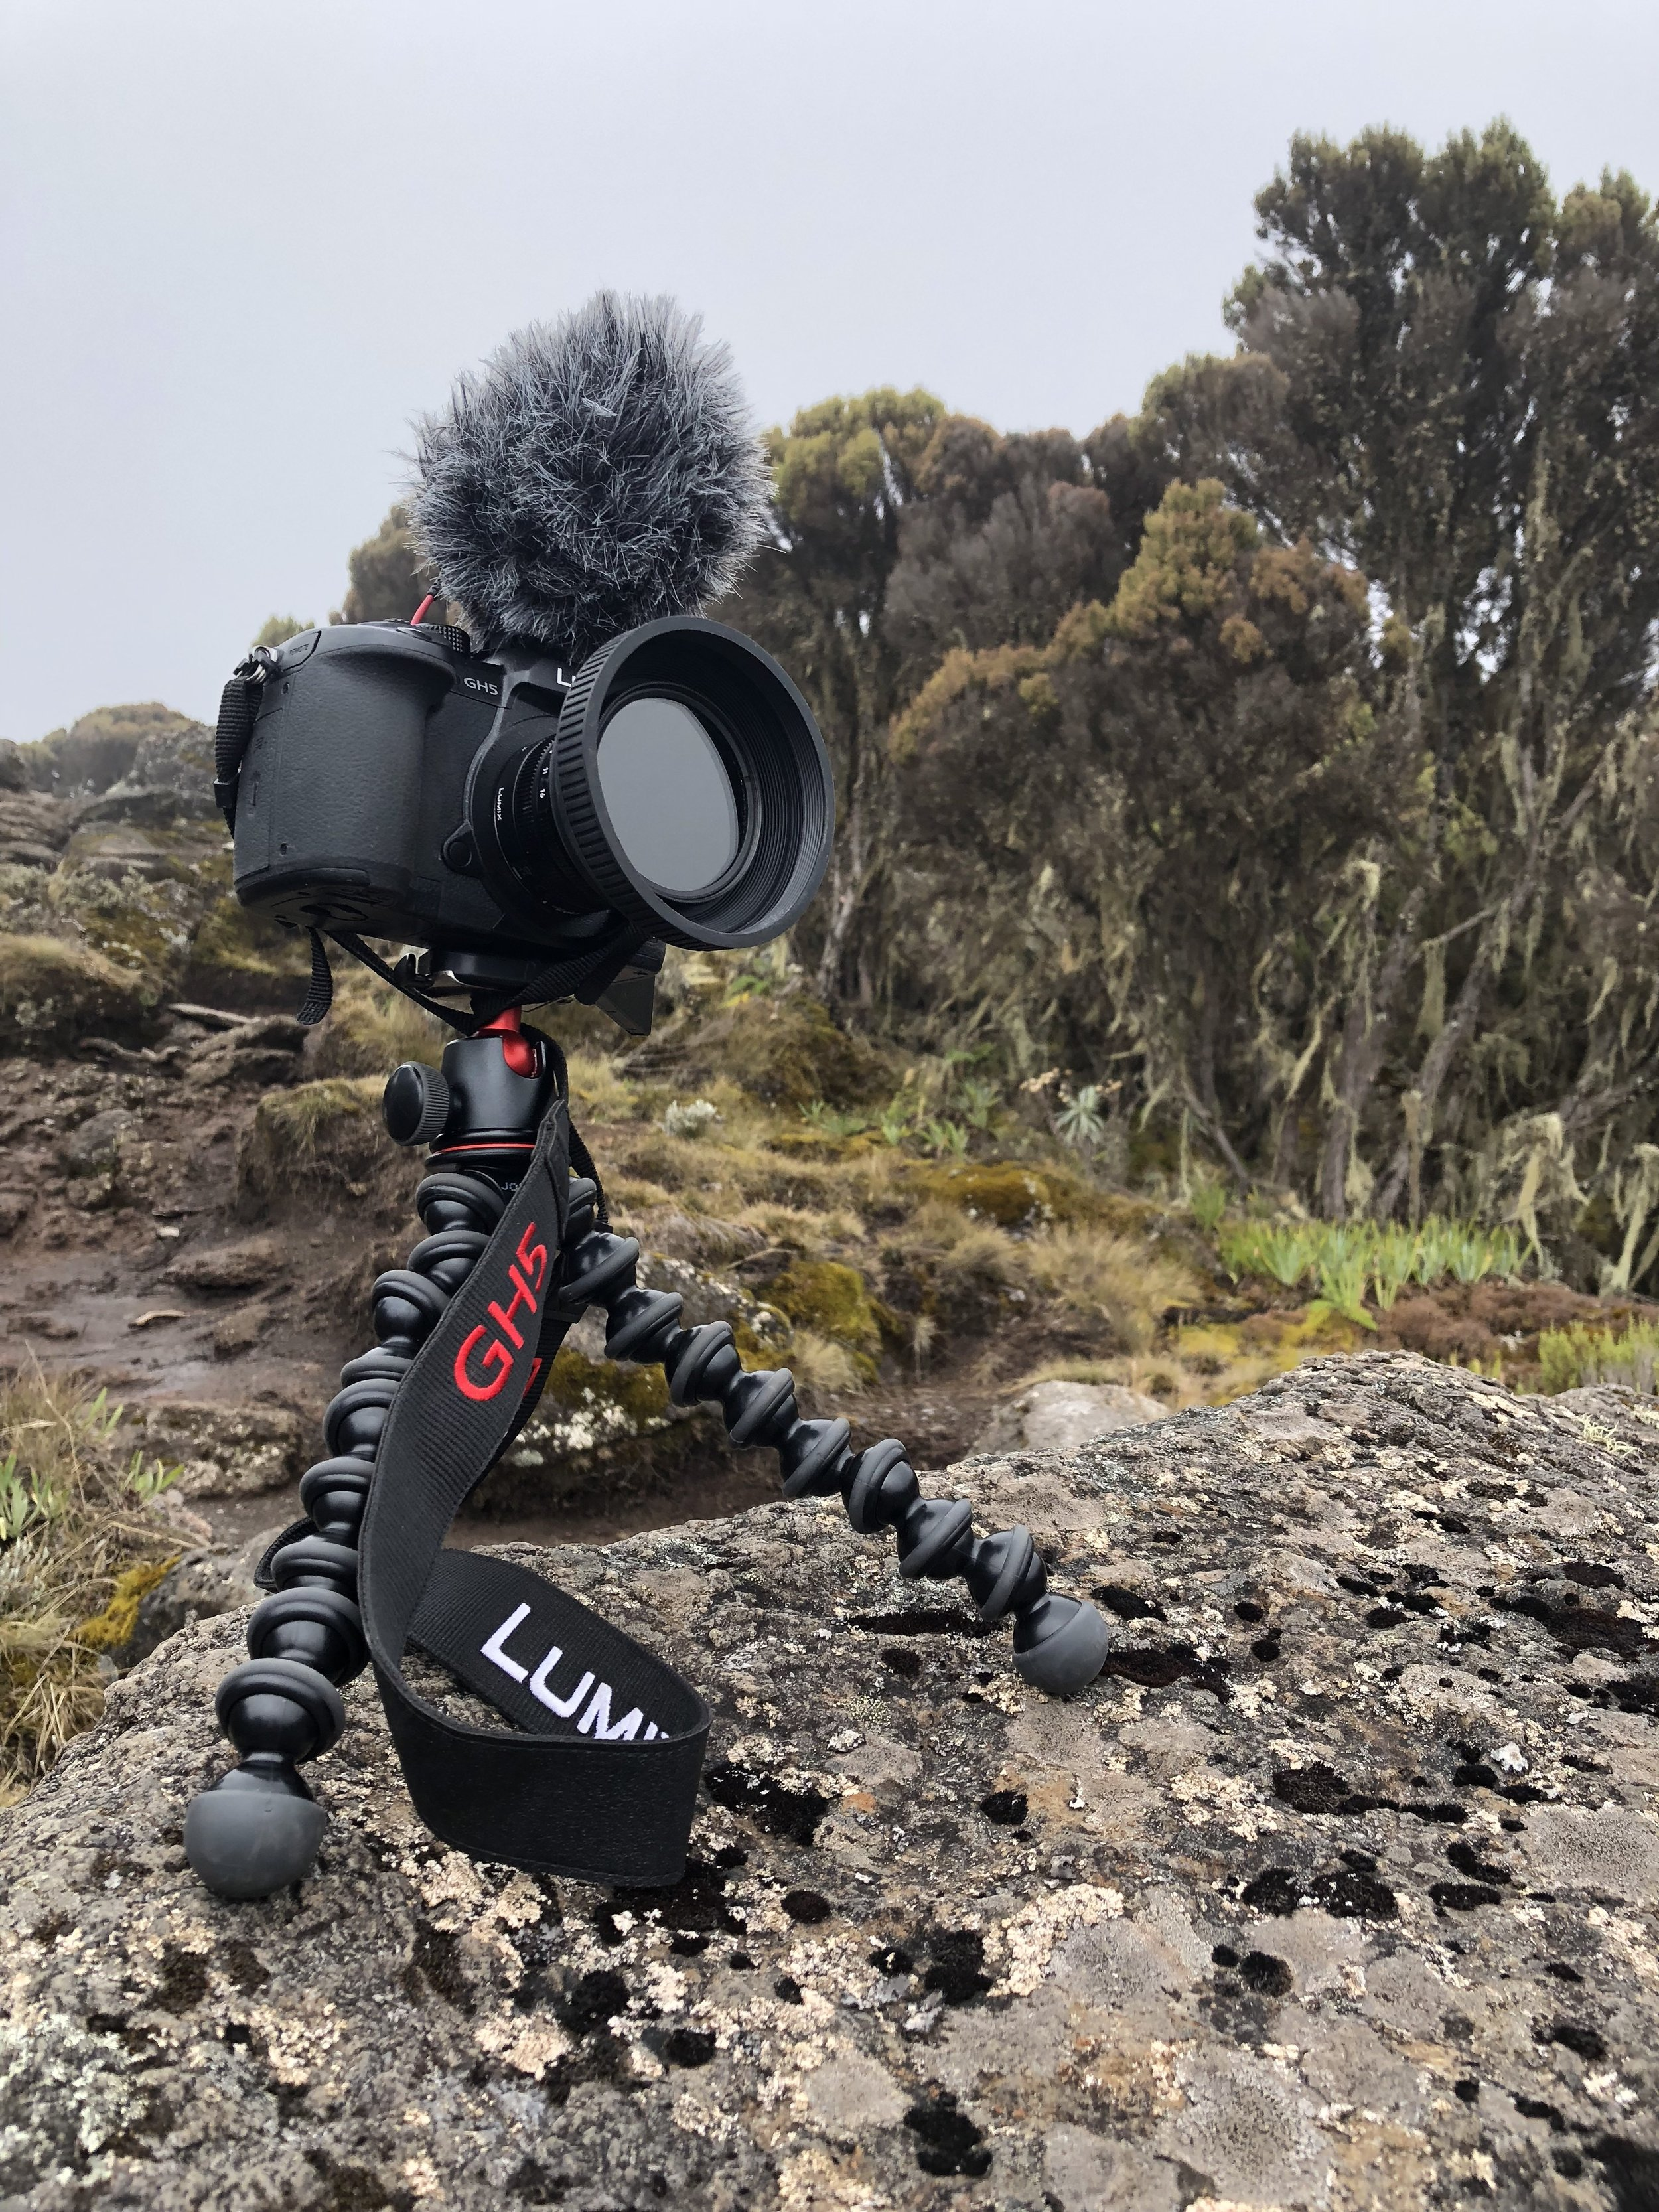 TIMELAPSE. GEAR: PANASONIC GH5 WITH 15mm leica Lens